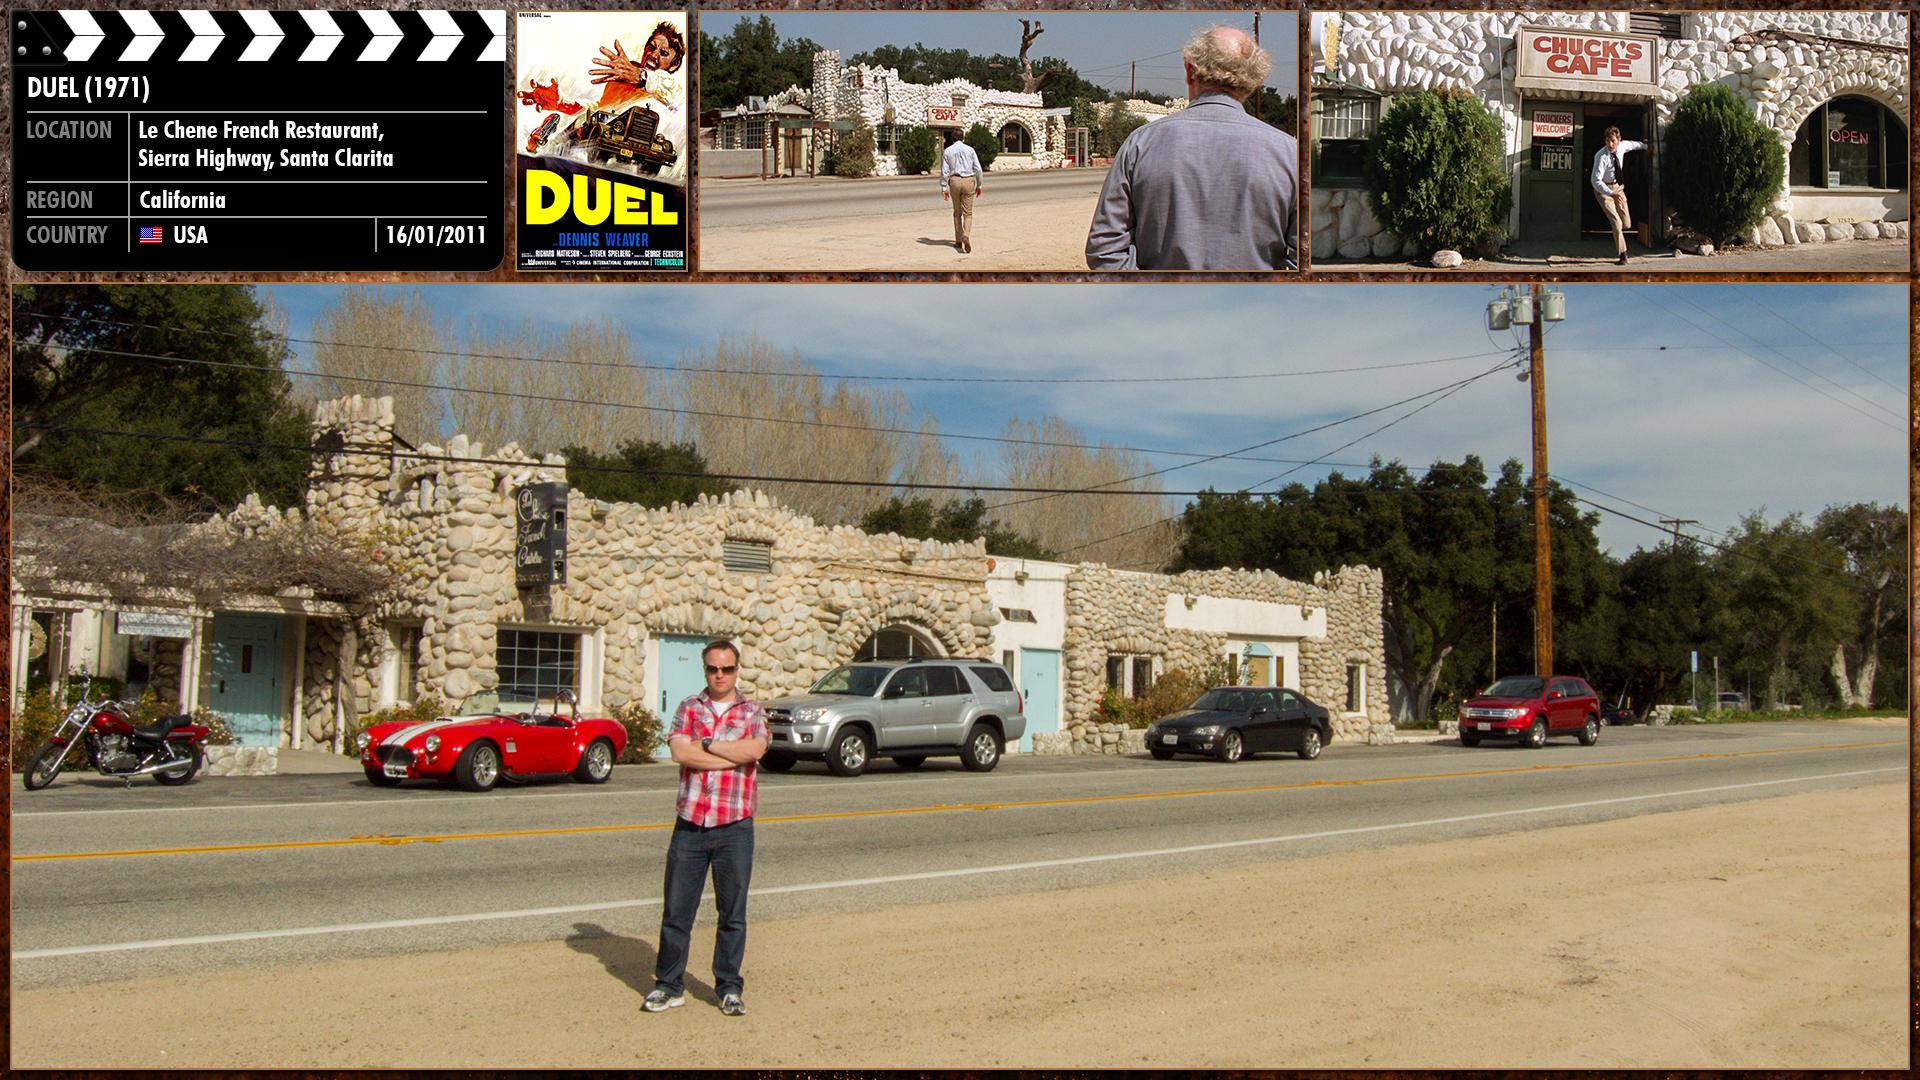 Filming location photo for Duel (1971) 1 of 5